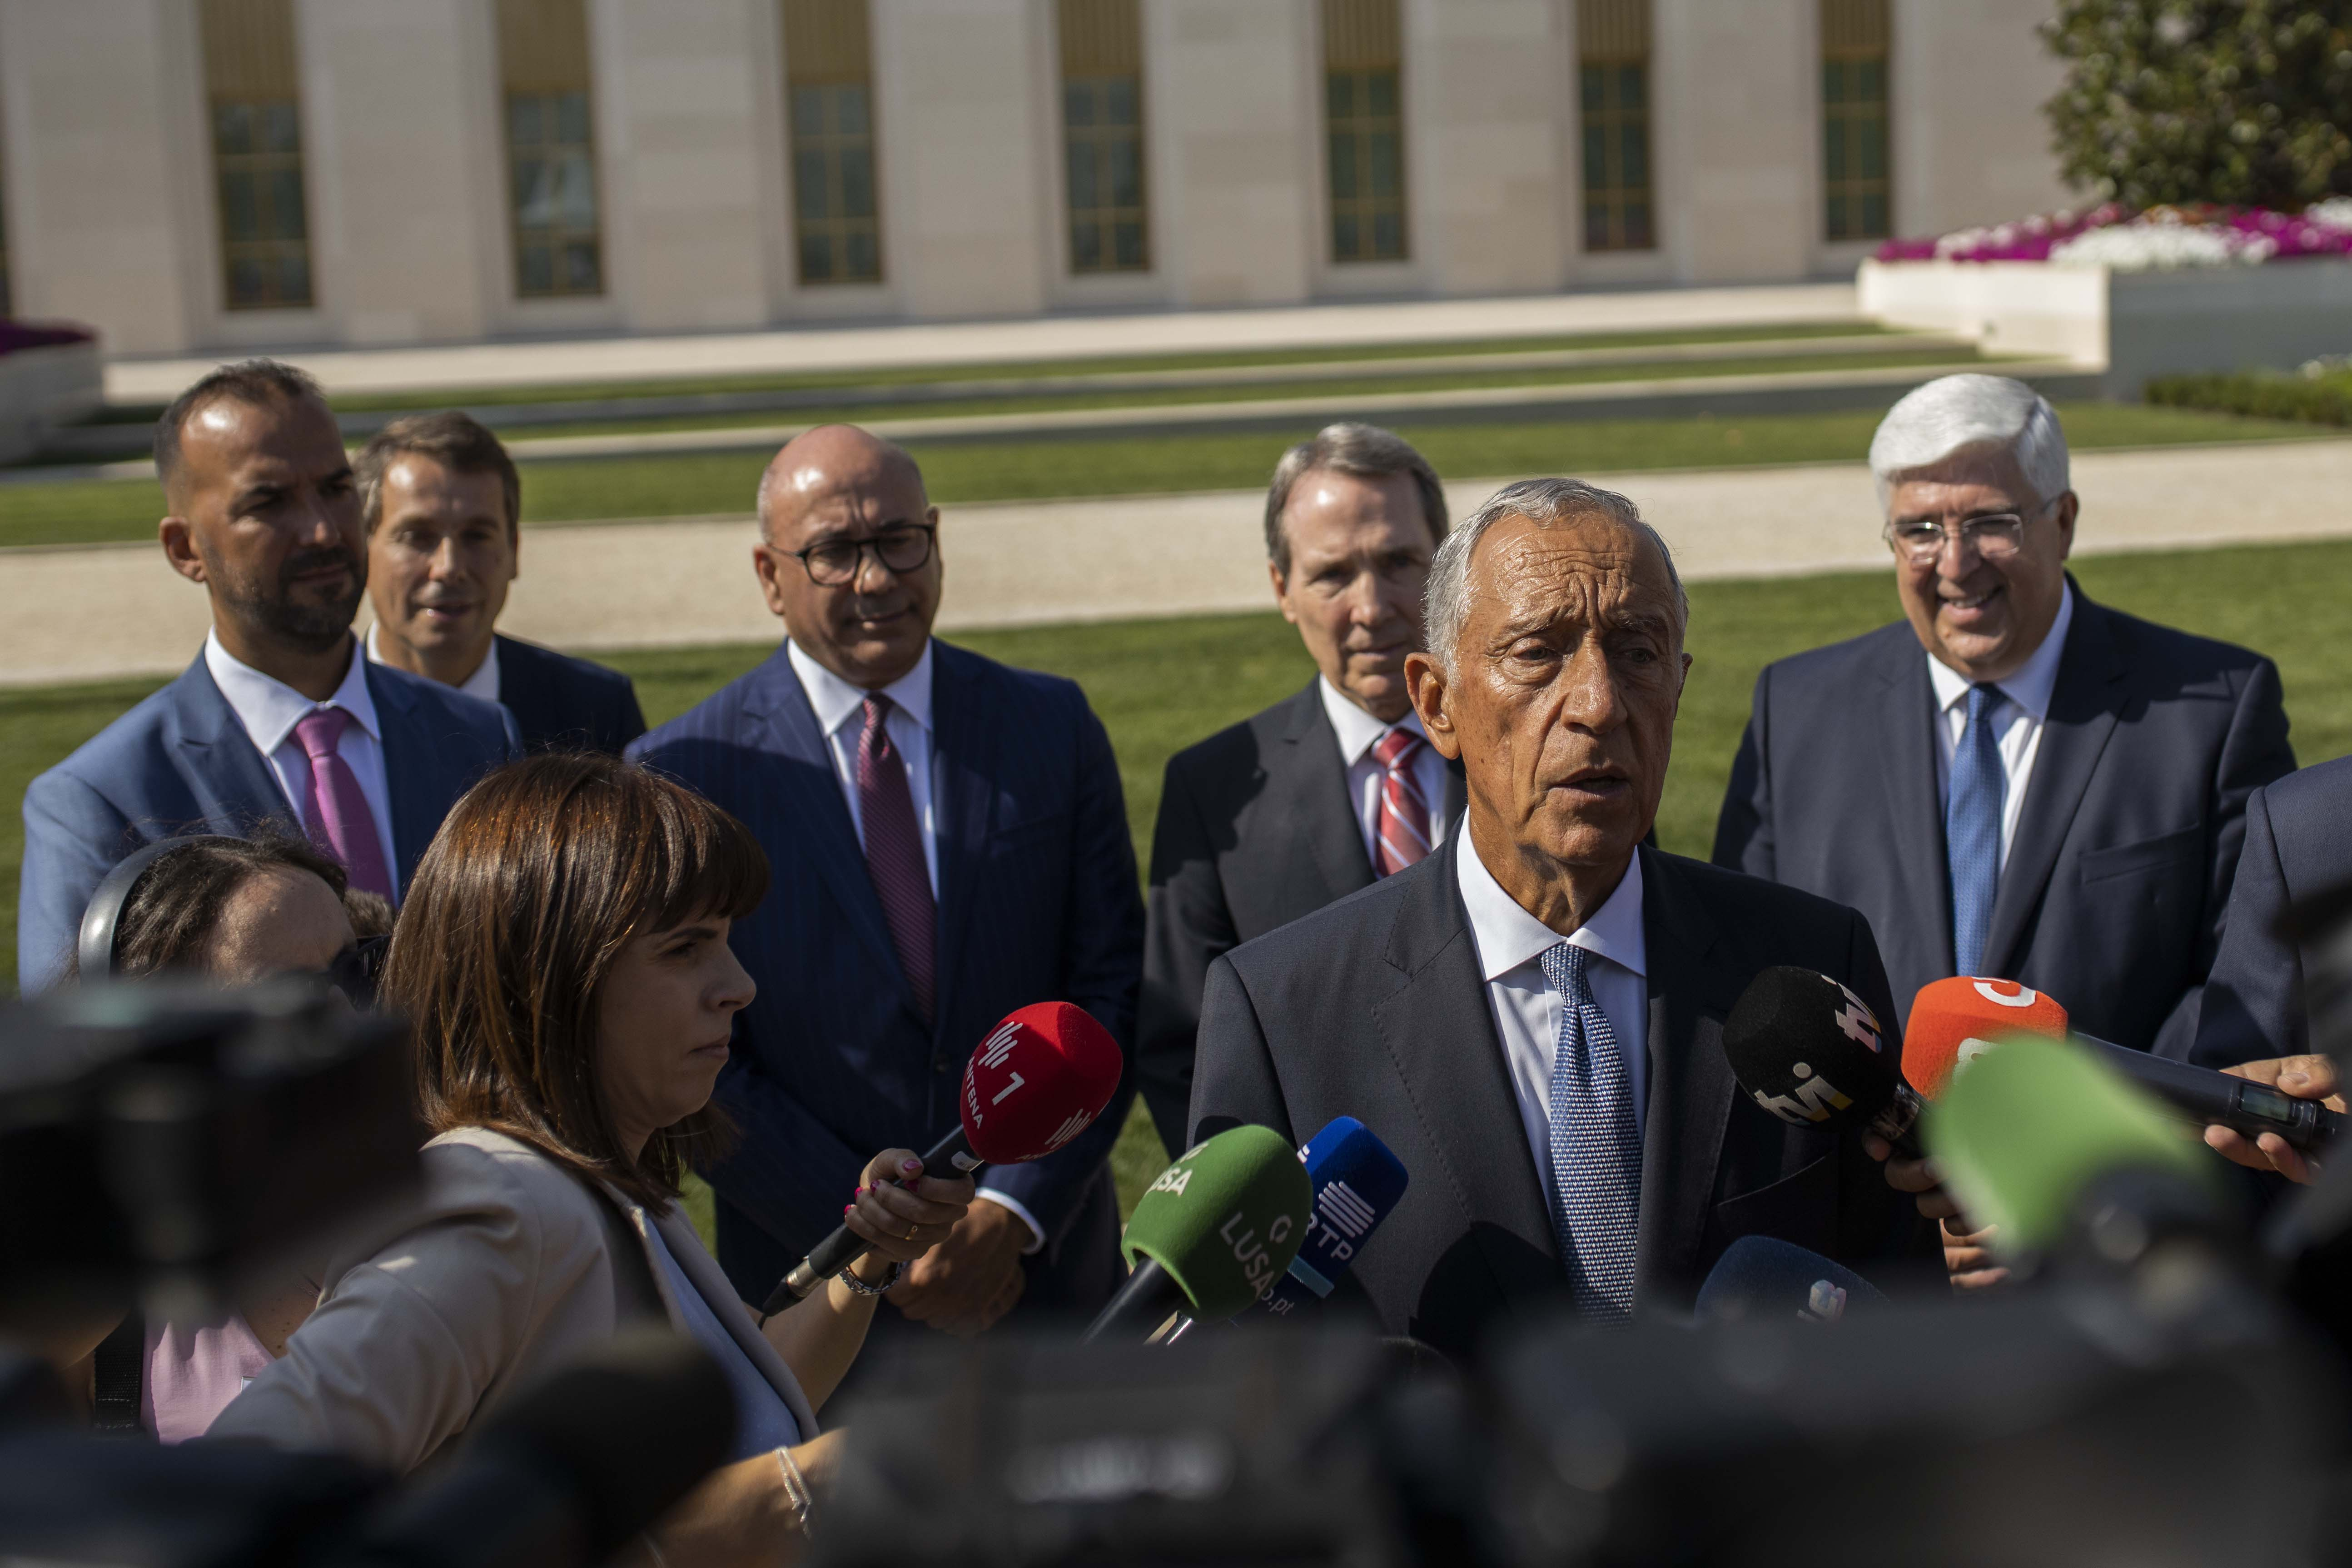 Marcelo Rebelo de Sousa, p[resident of Portugal, and Church leaders address the media gathered in front of the Lisbon Portugal Temple on Aug. 29, 2019.